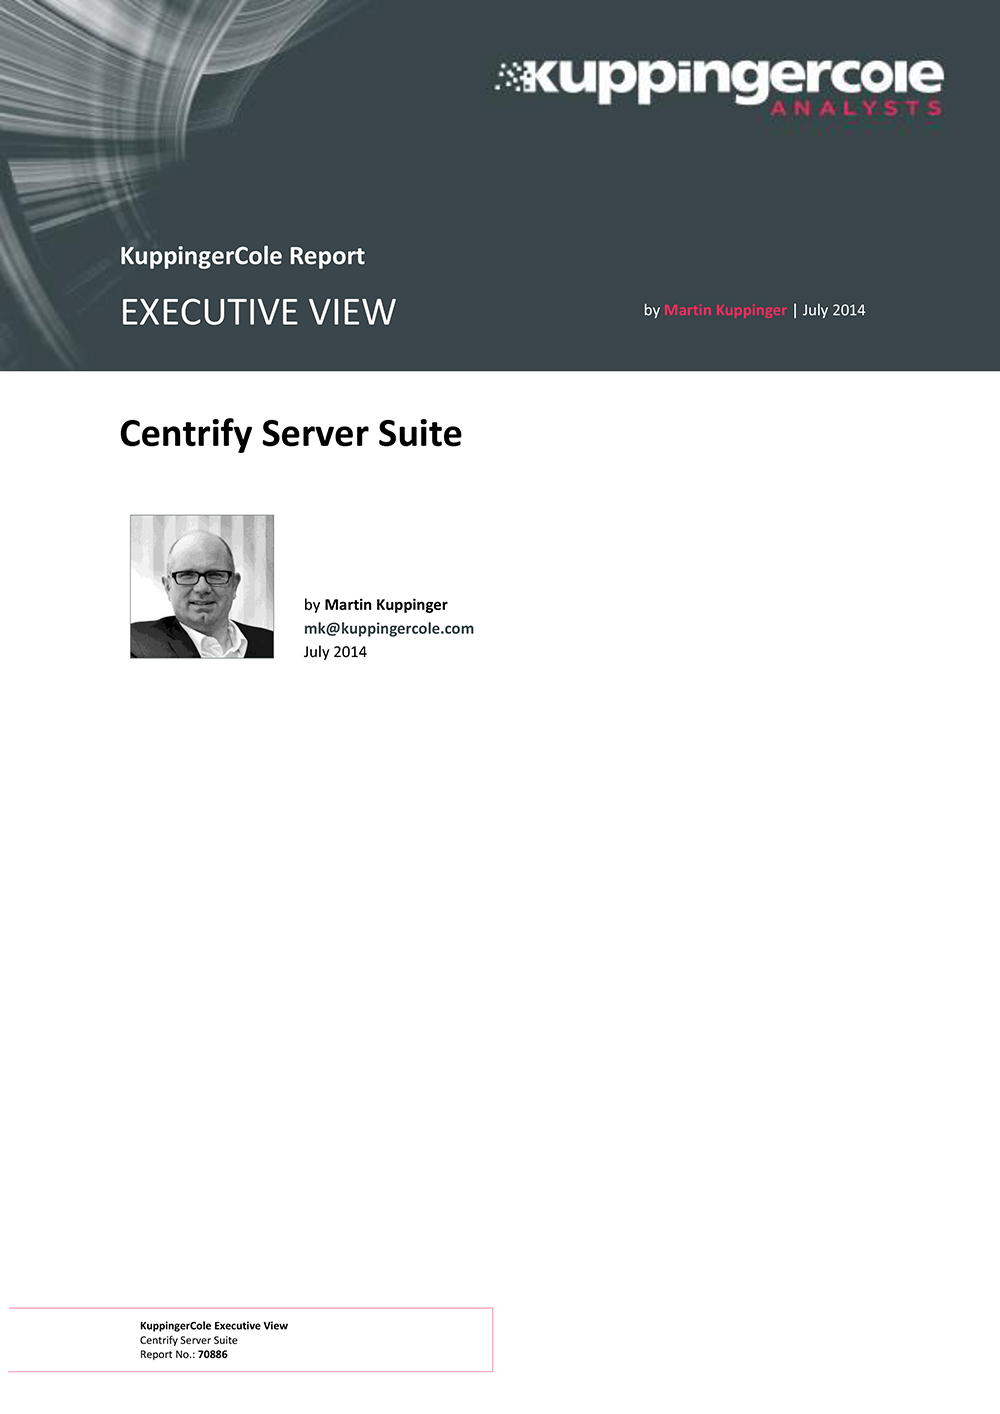 KuppingerCole: Centrify Server Suite